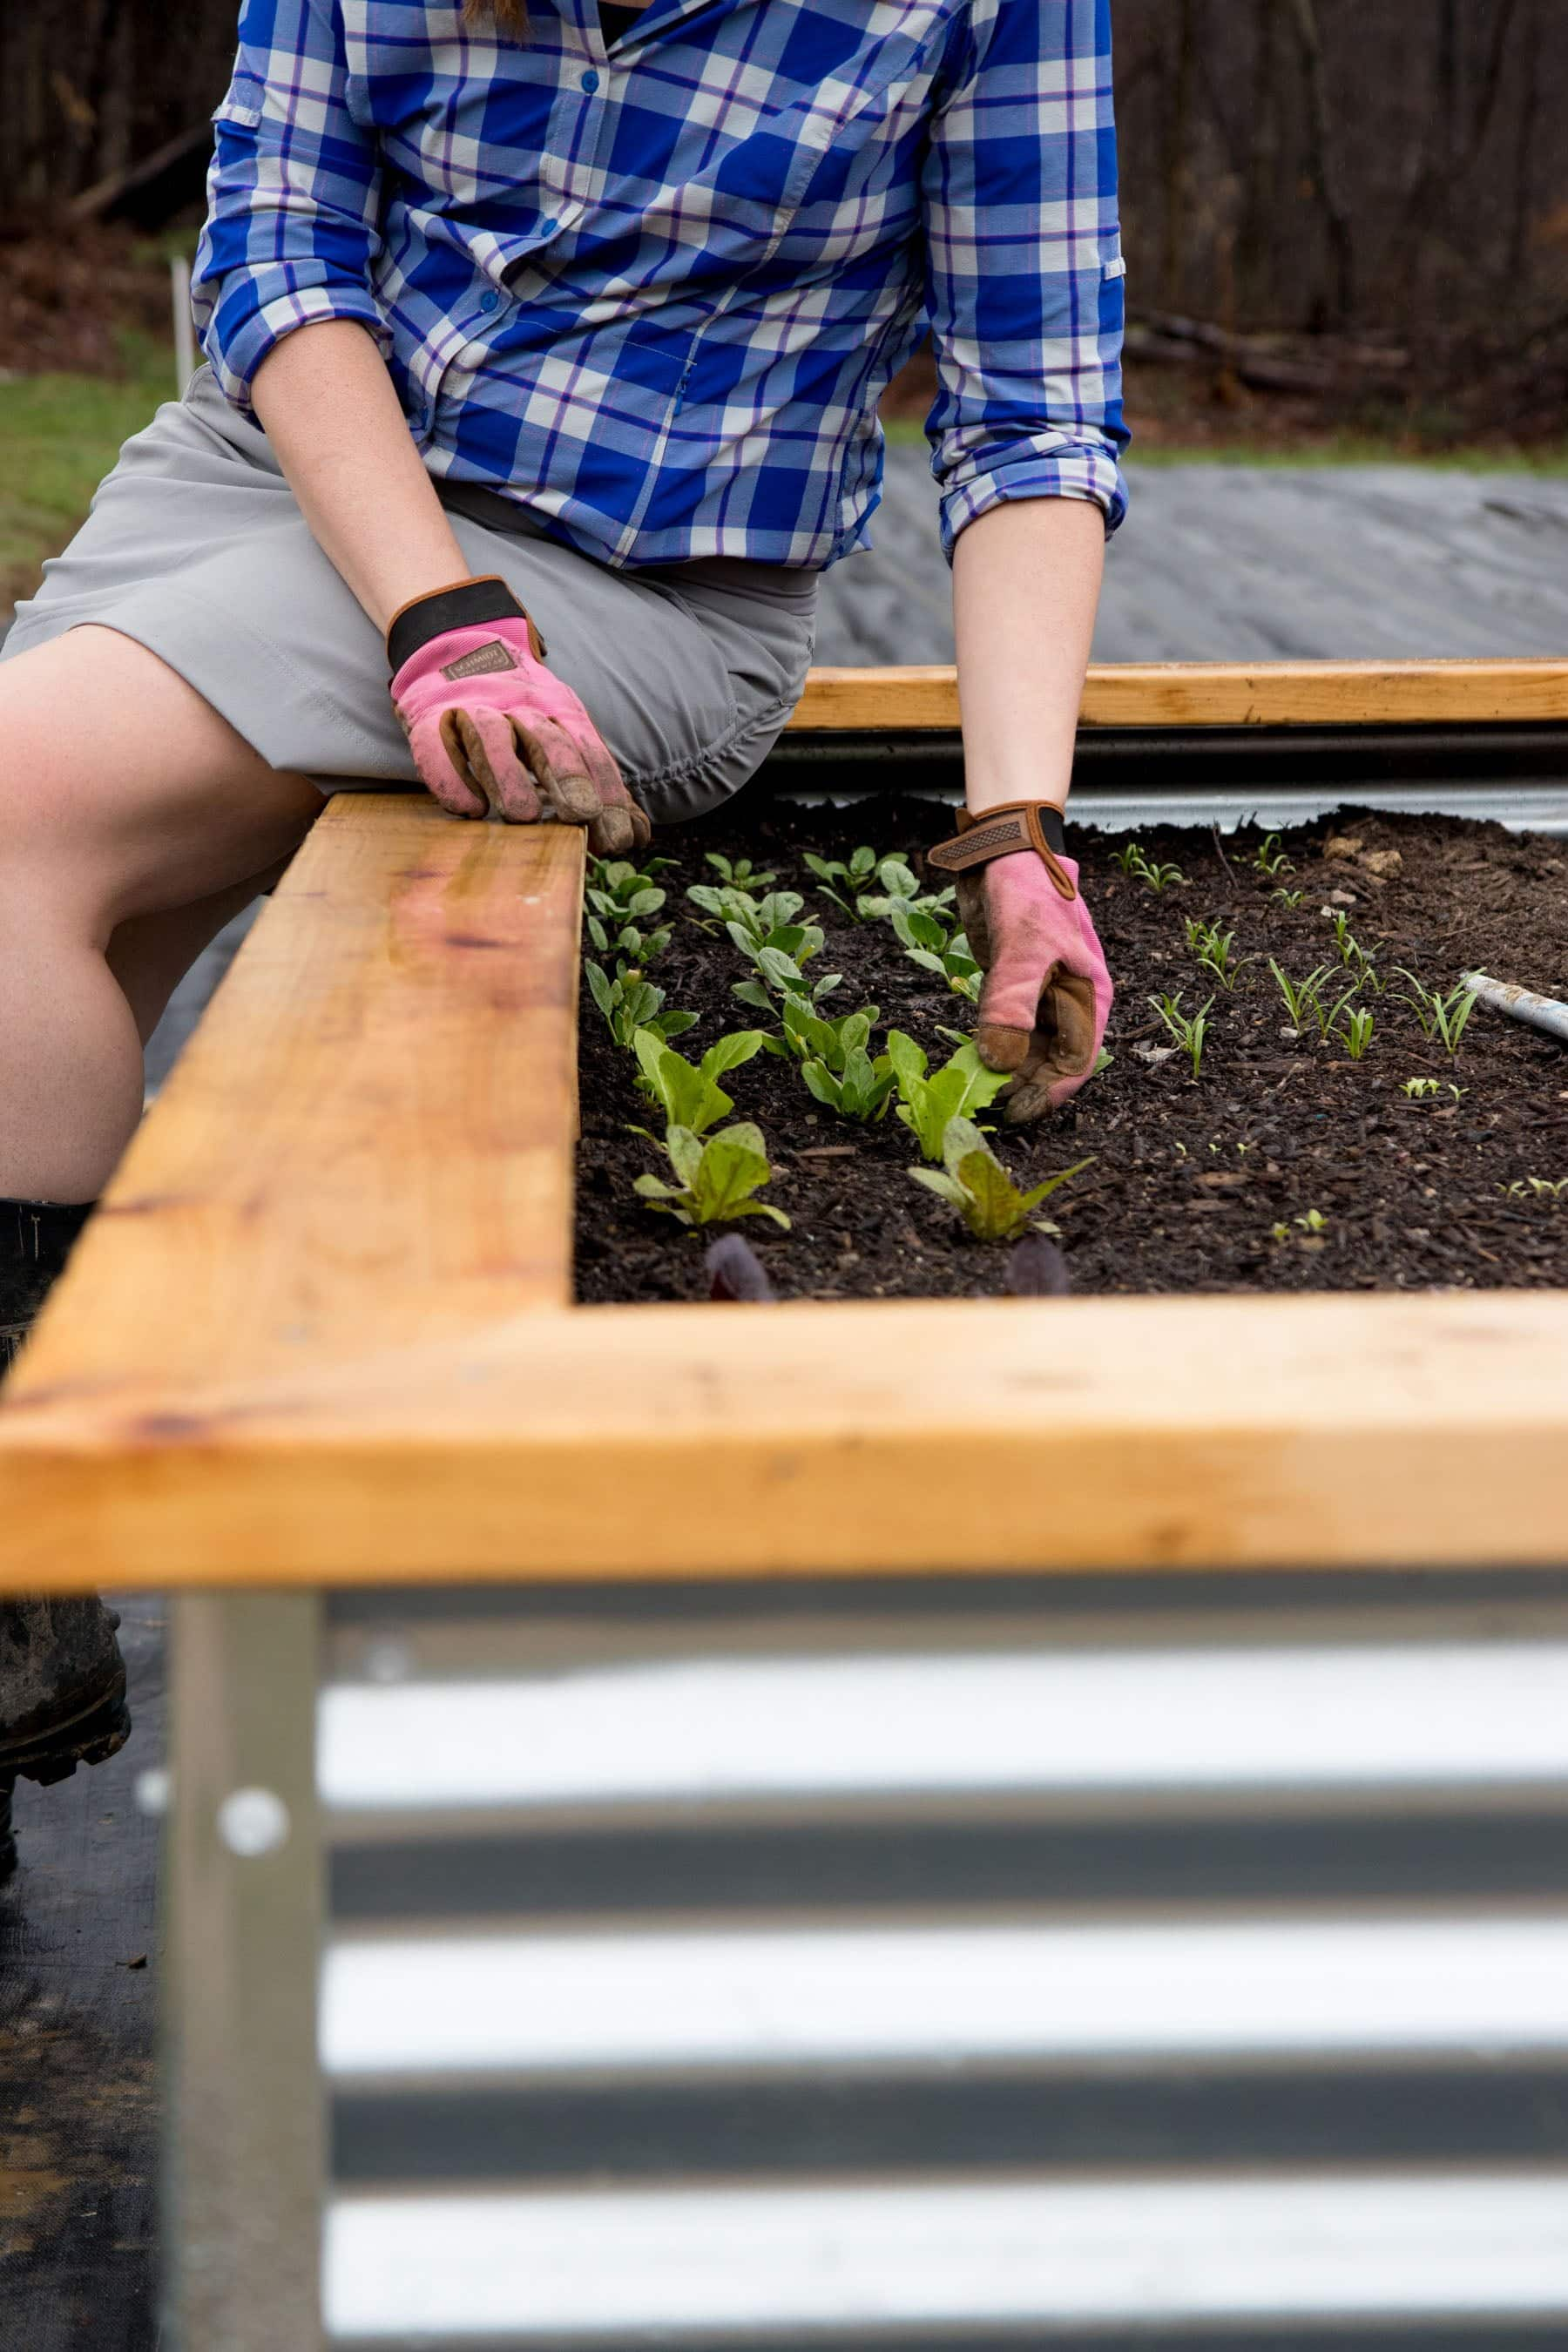 Person sitting on the side of a raised bed tending to lettuce plants